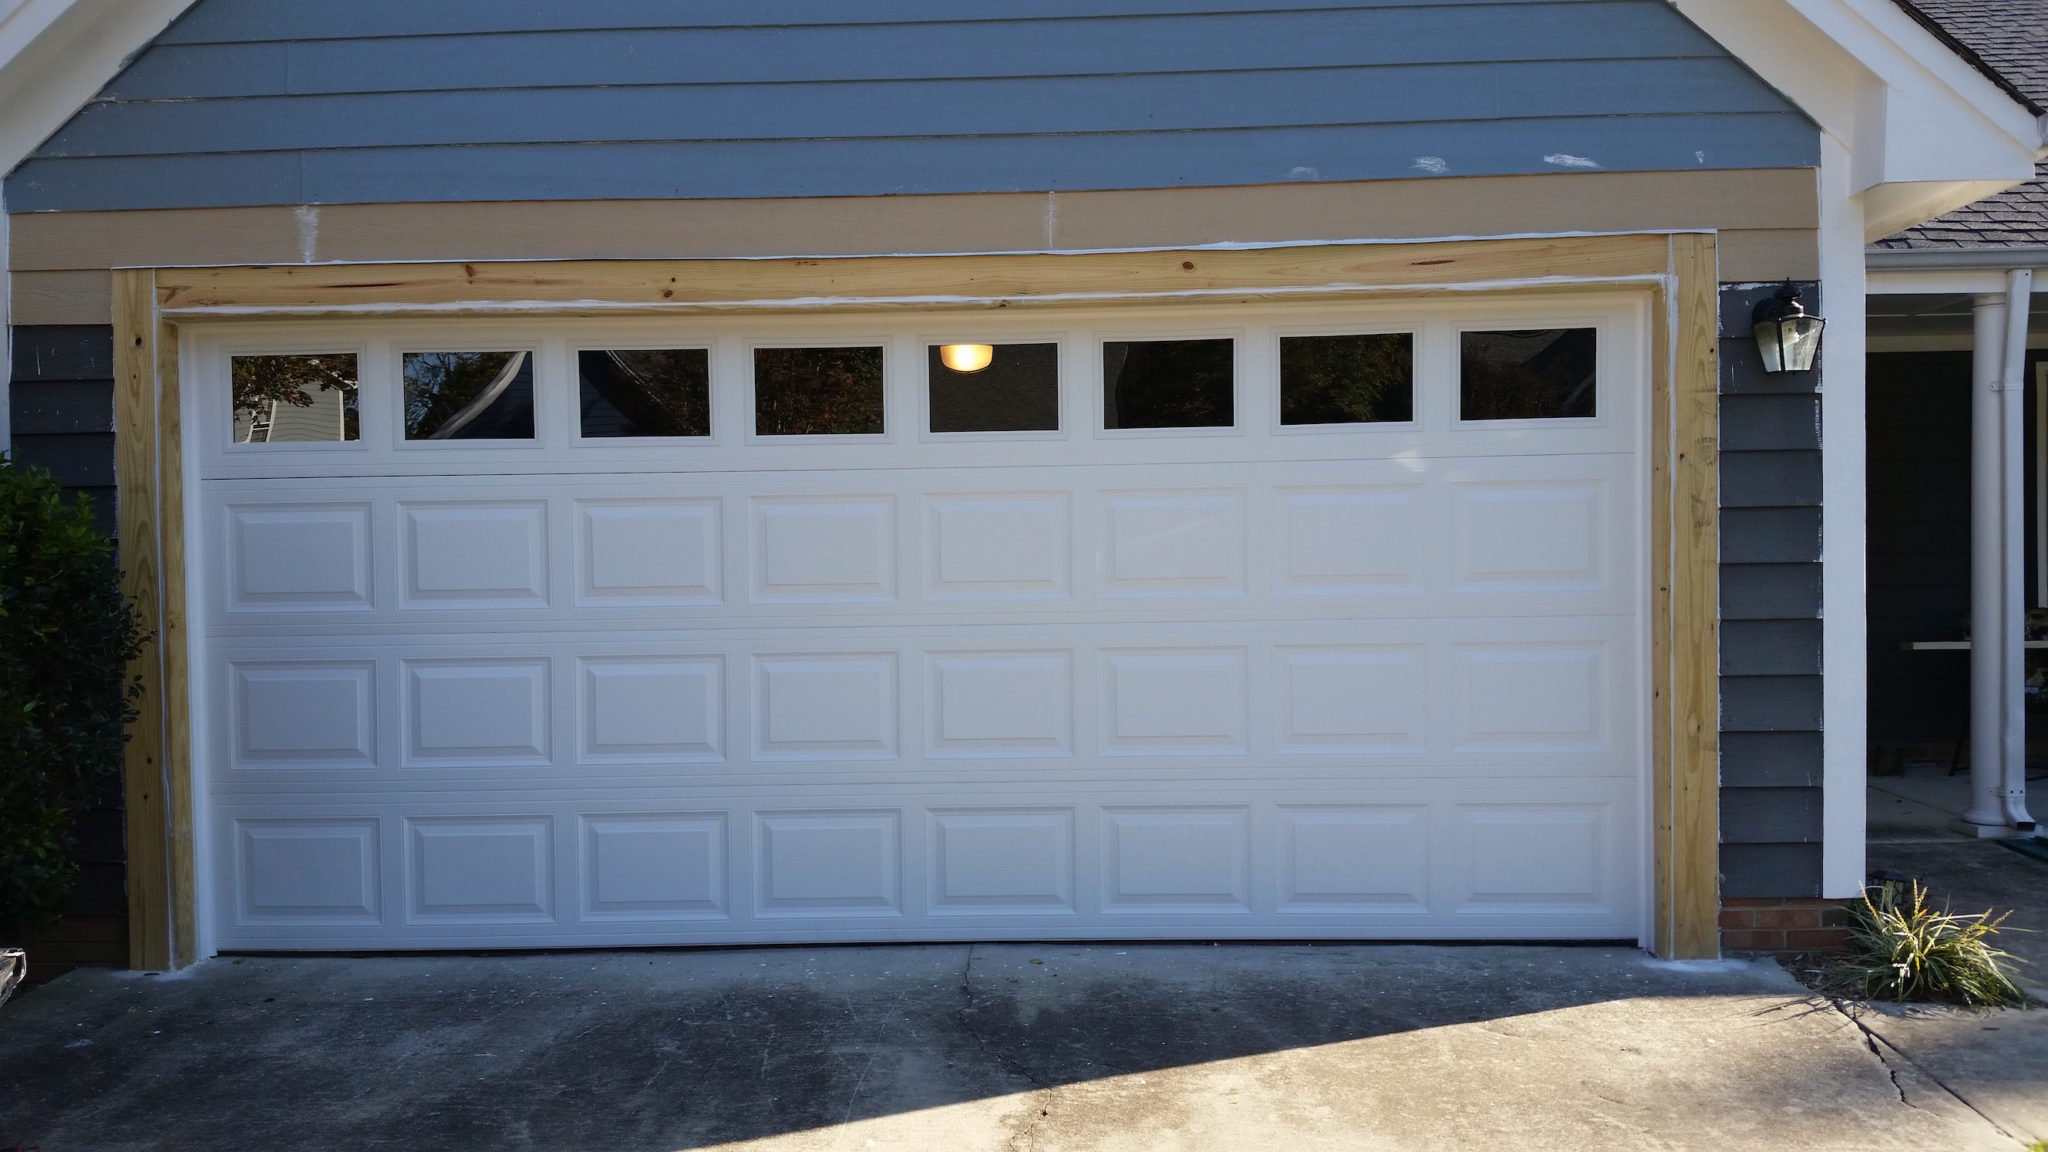 South charlotte residential garage door framing repair for Garage door installation jobs